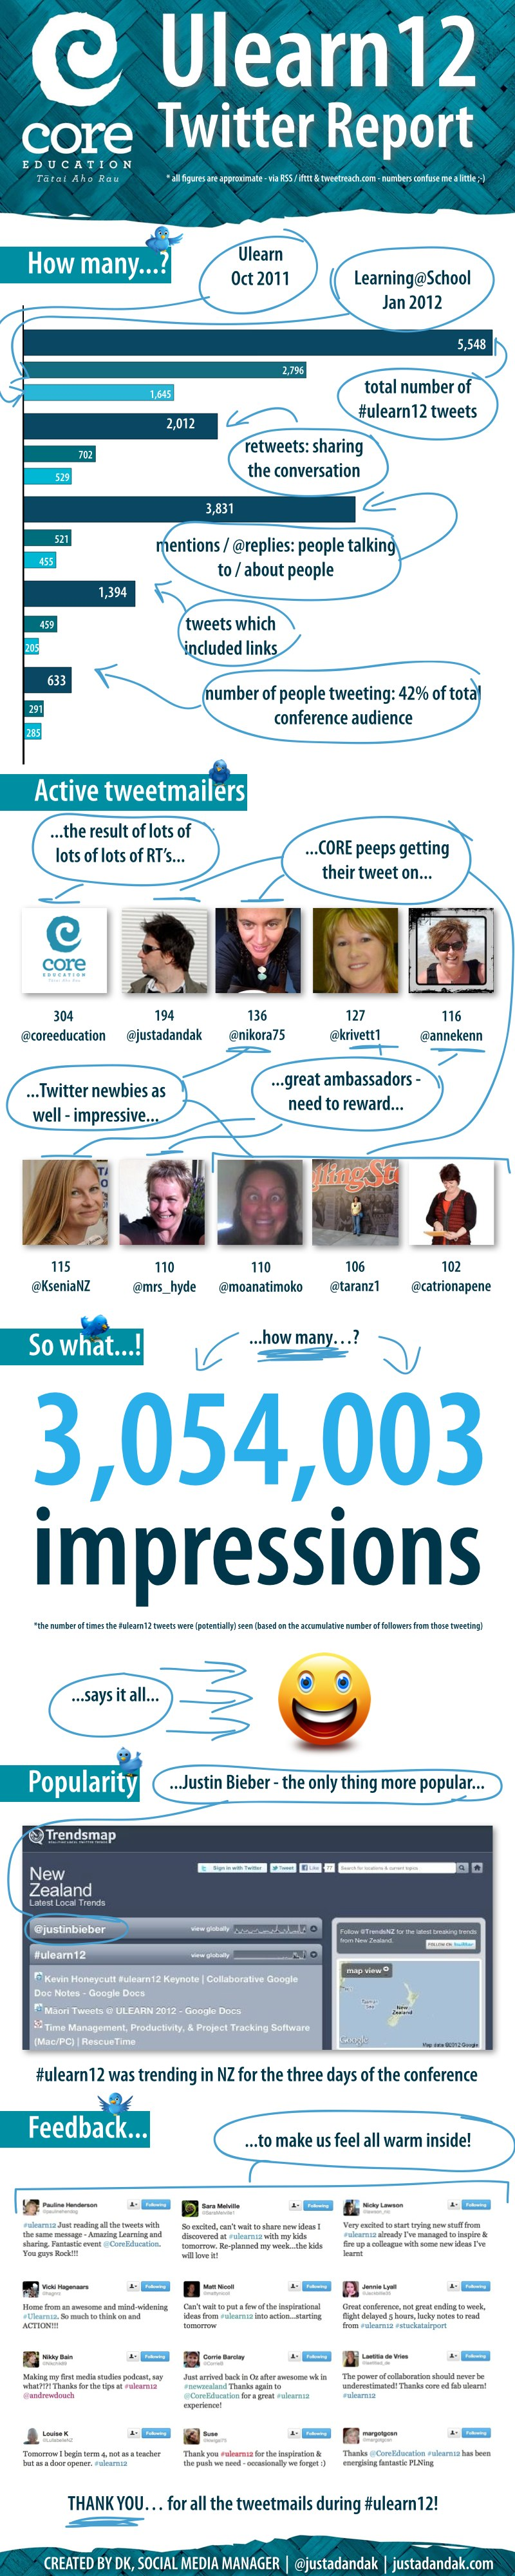 ulearn12 twitter report infographic